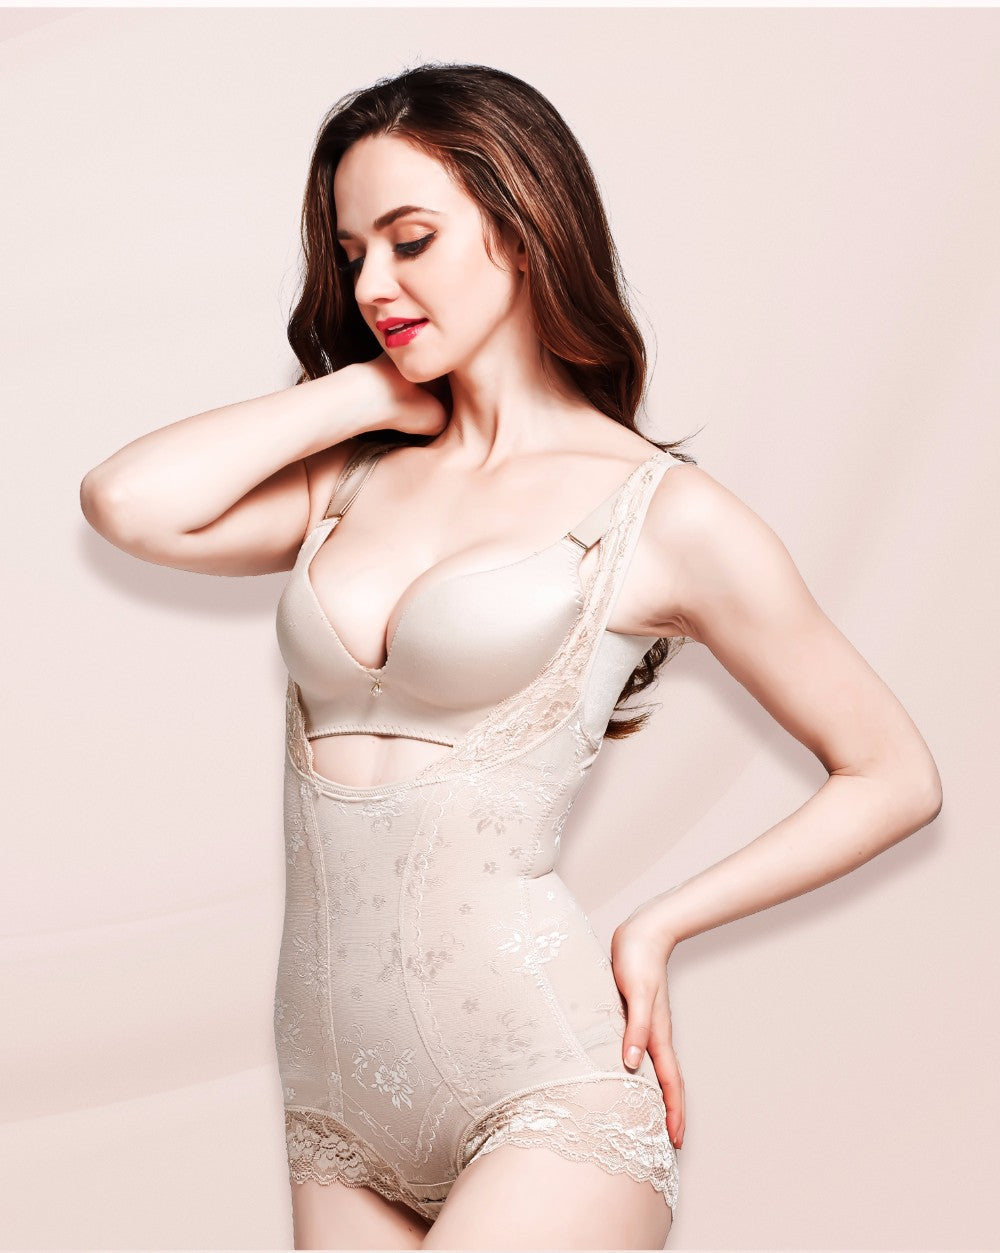 Slimming Underwear Bodysuit Body Shaper Lingerie Ladies Shapewear Body Shaping Underwear For Women